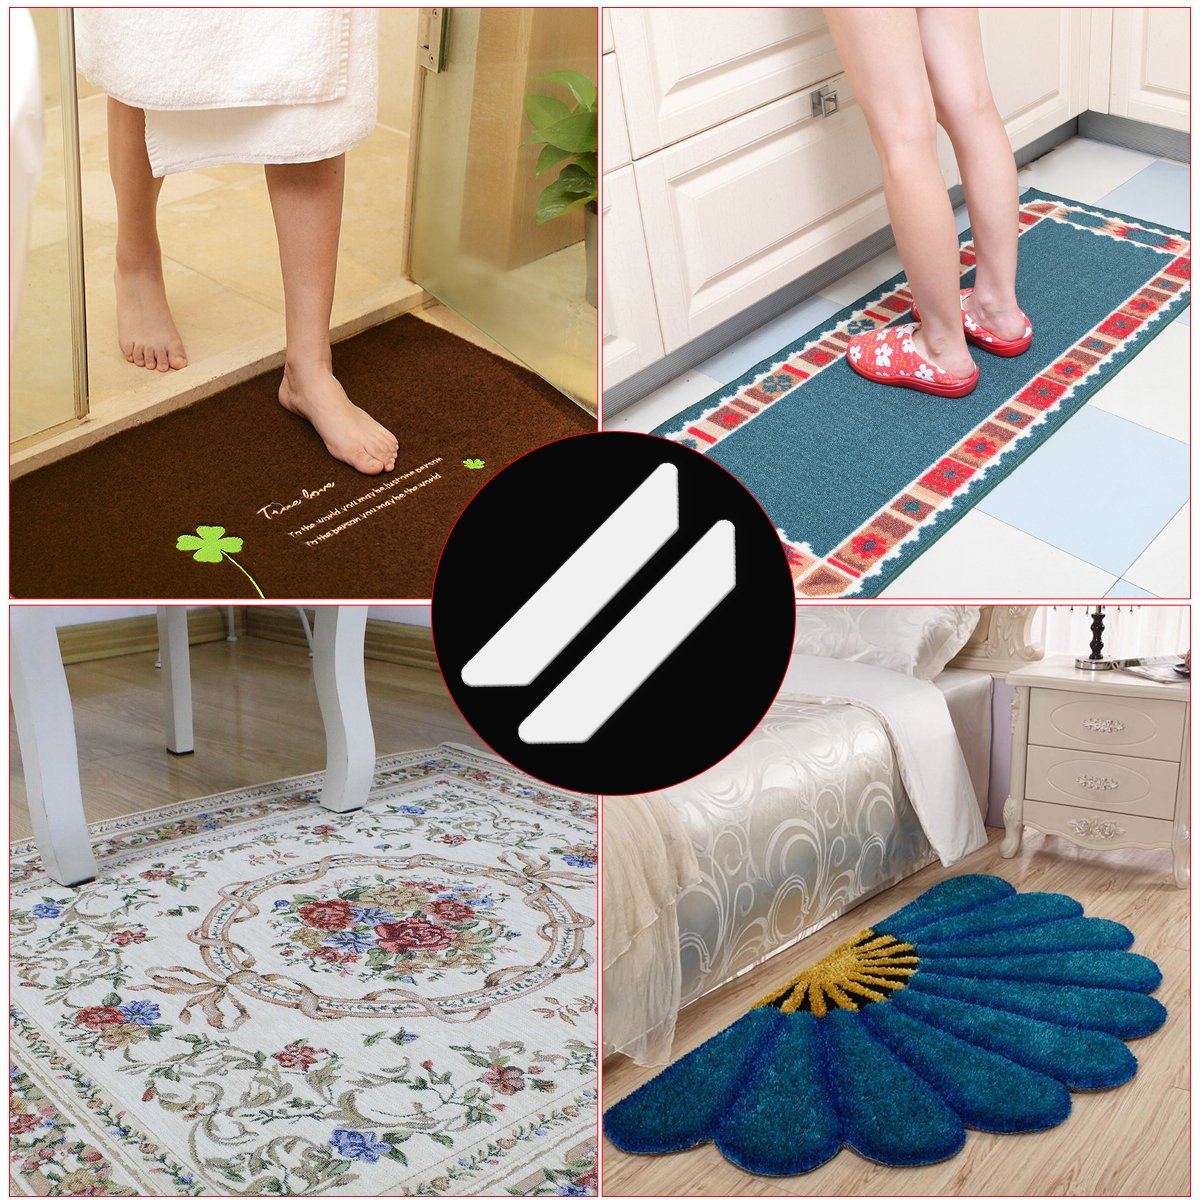 Rug Grippers Black Bbuyagain Co Bbuyagain 12 PCS Upgrade Washable Reusable Anti Curling /& Non Slip Self Adhesive Rug Grippers Pads Thick Premium Carpet Gripper for Rug Corners and Edges Ltd